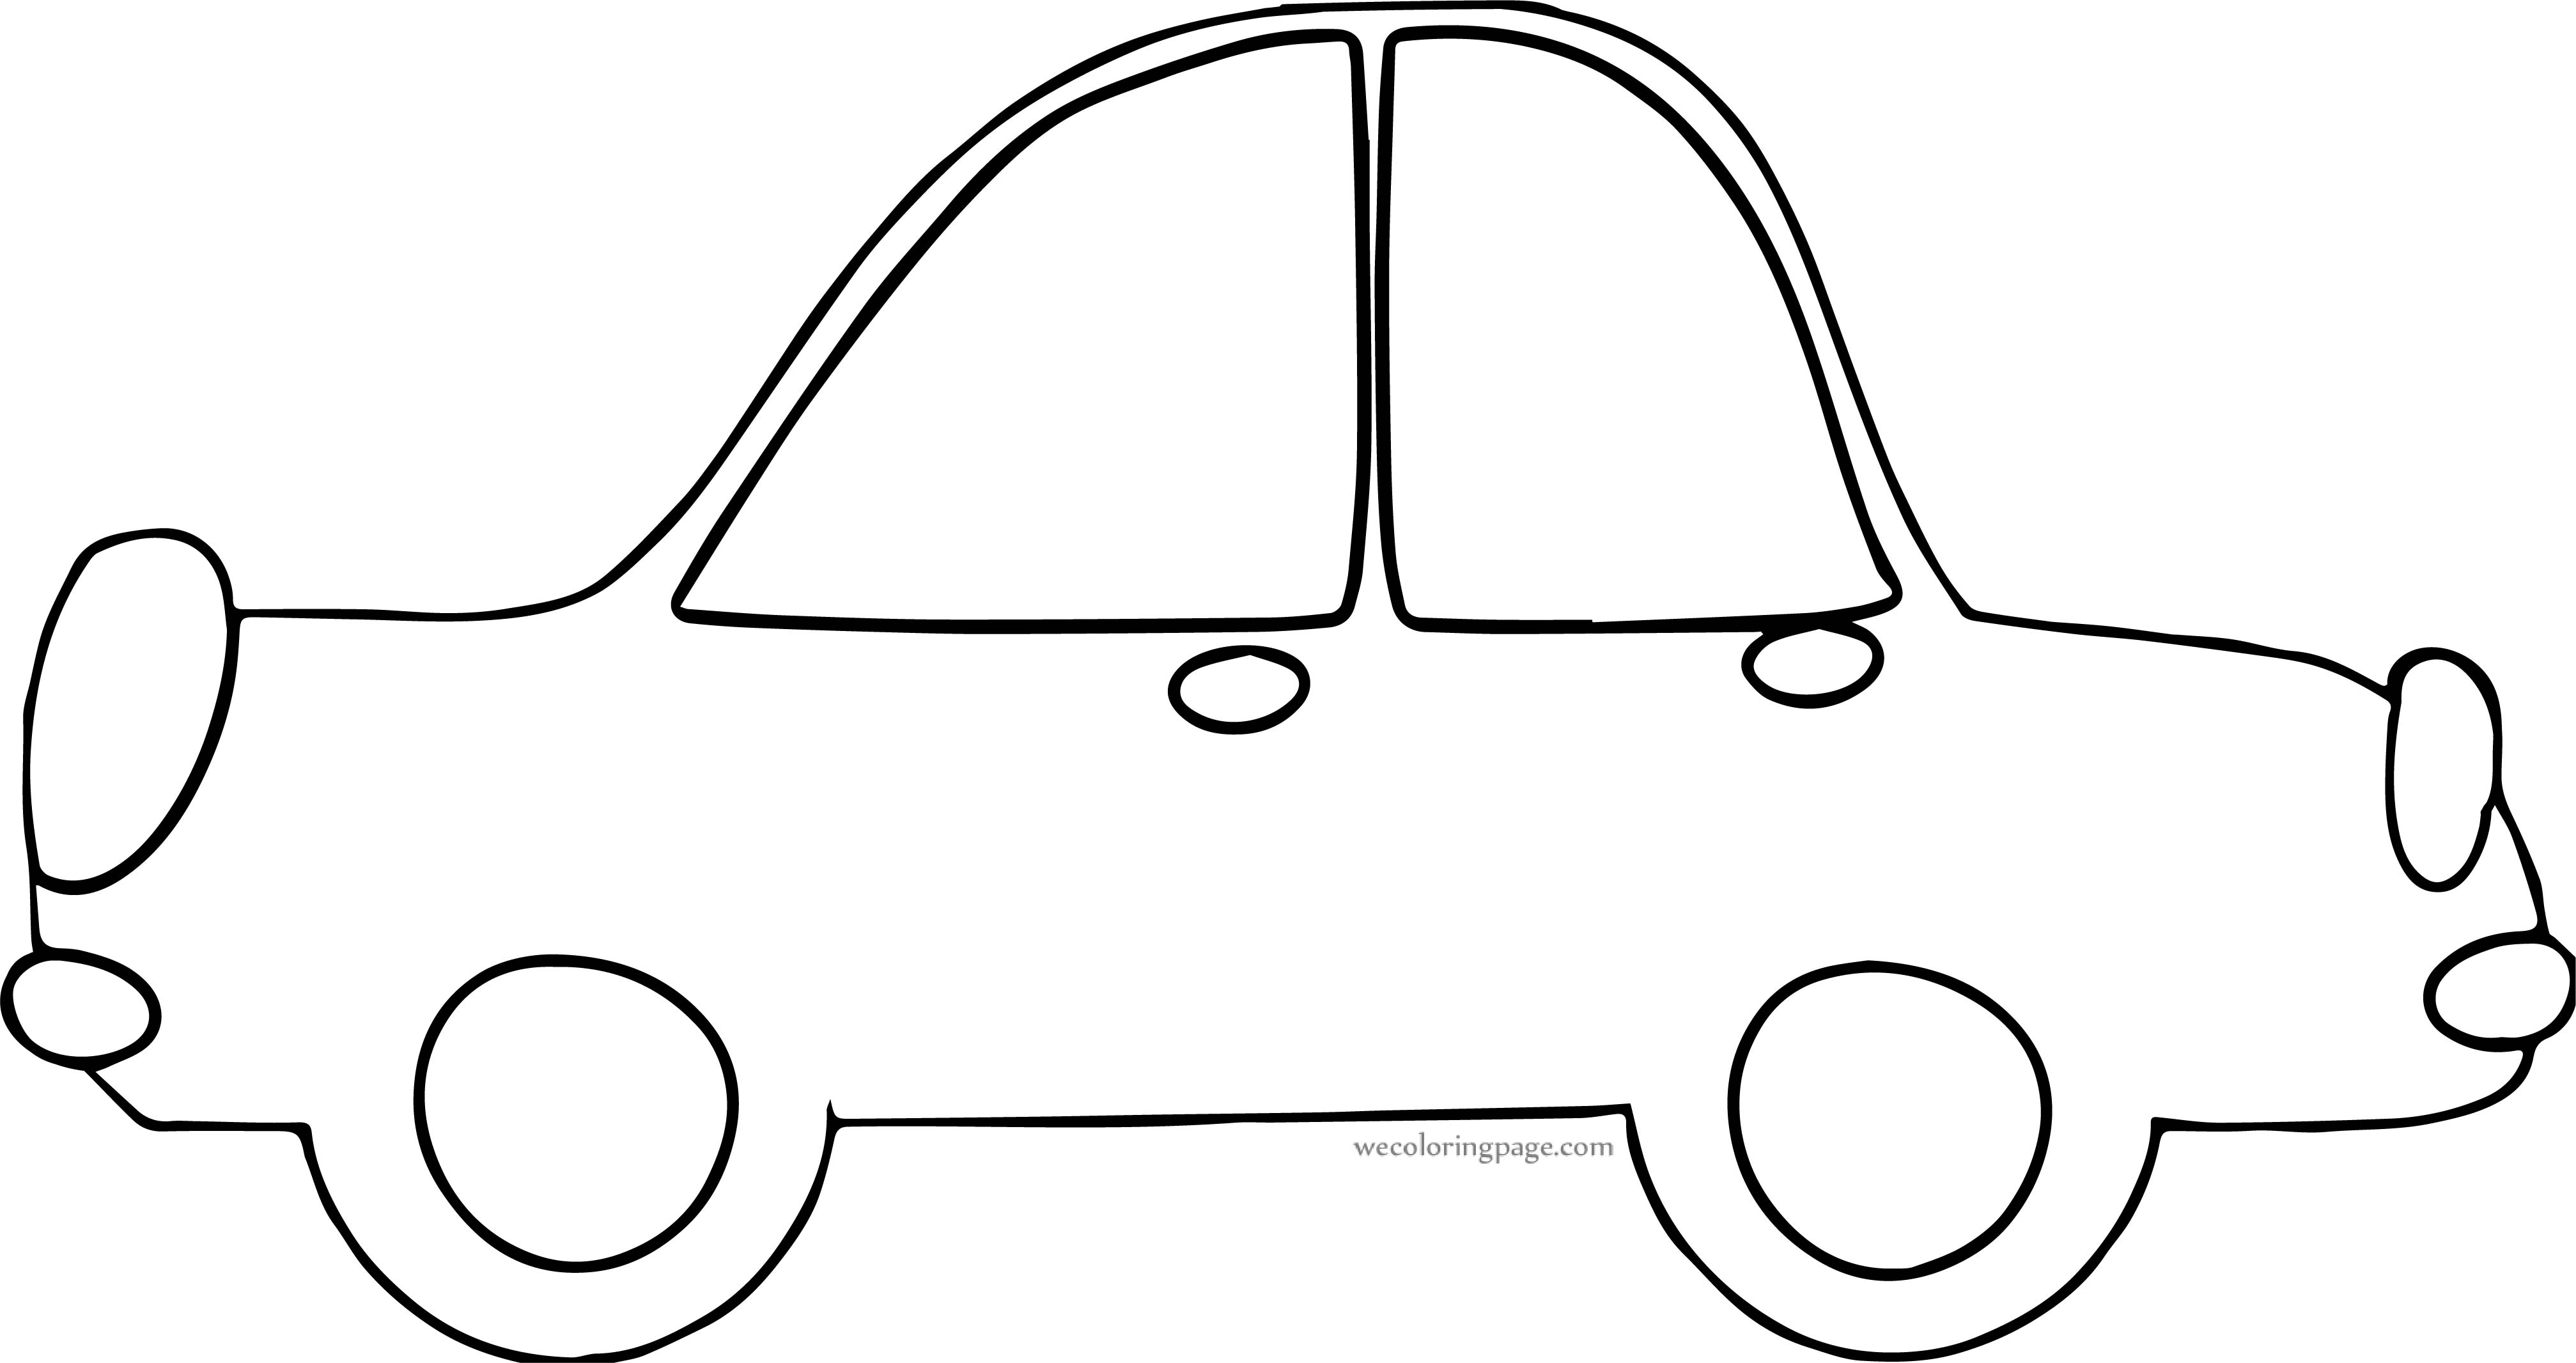 Car Wecoloringpage Coloring Page 166